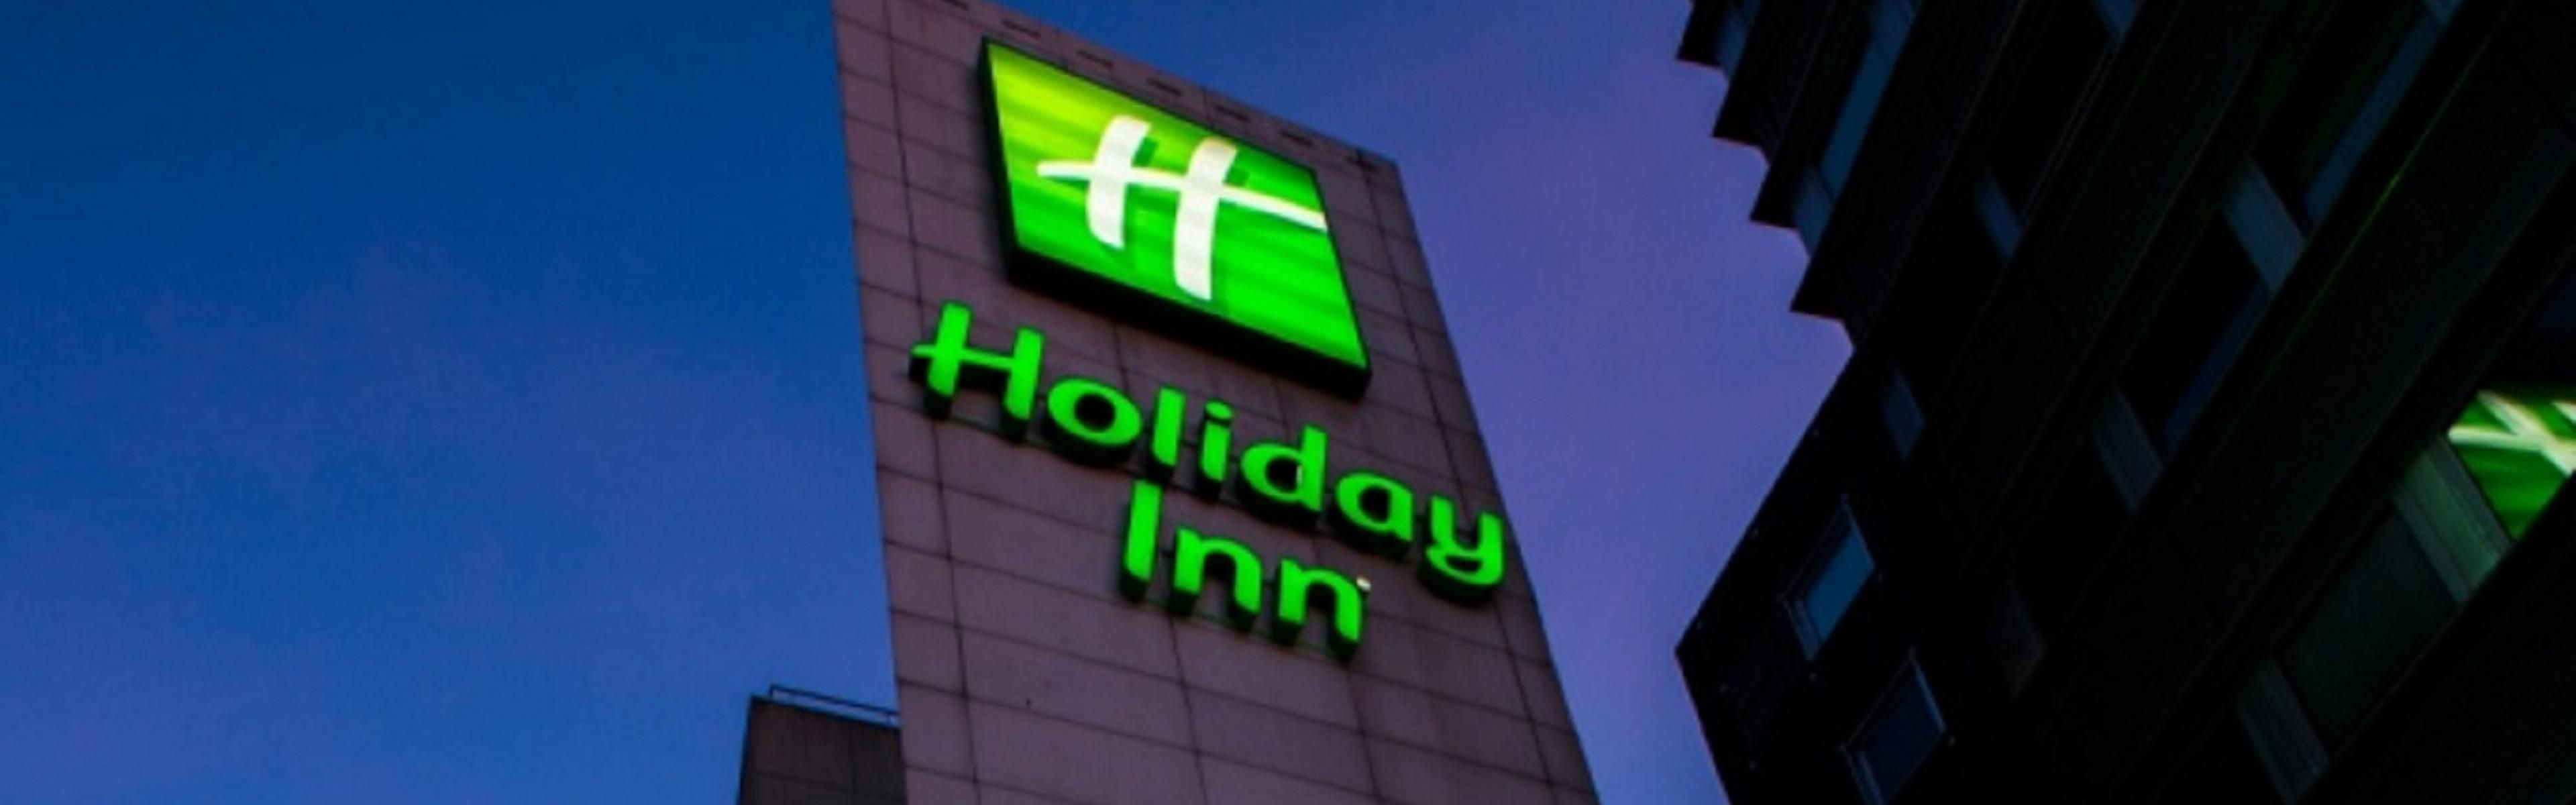 Store Exterieur Orleans Holiday Inn Hotel Clermont Ferrand Centre France